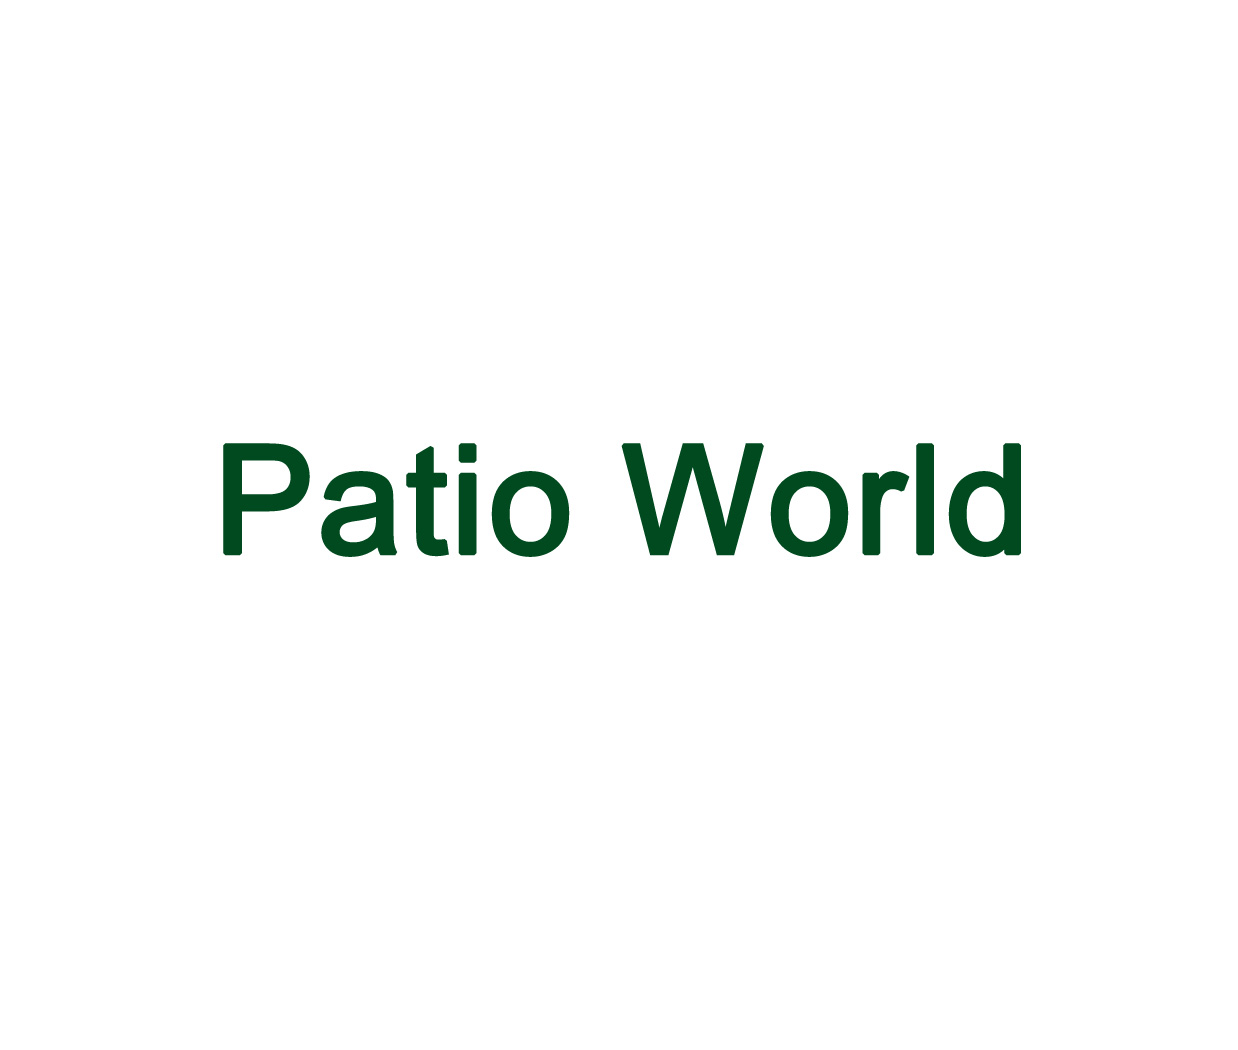 Patio World